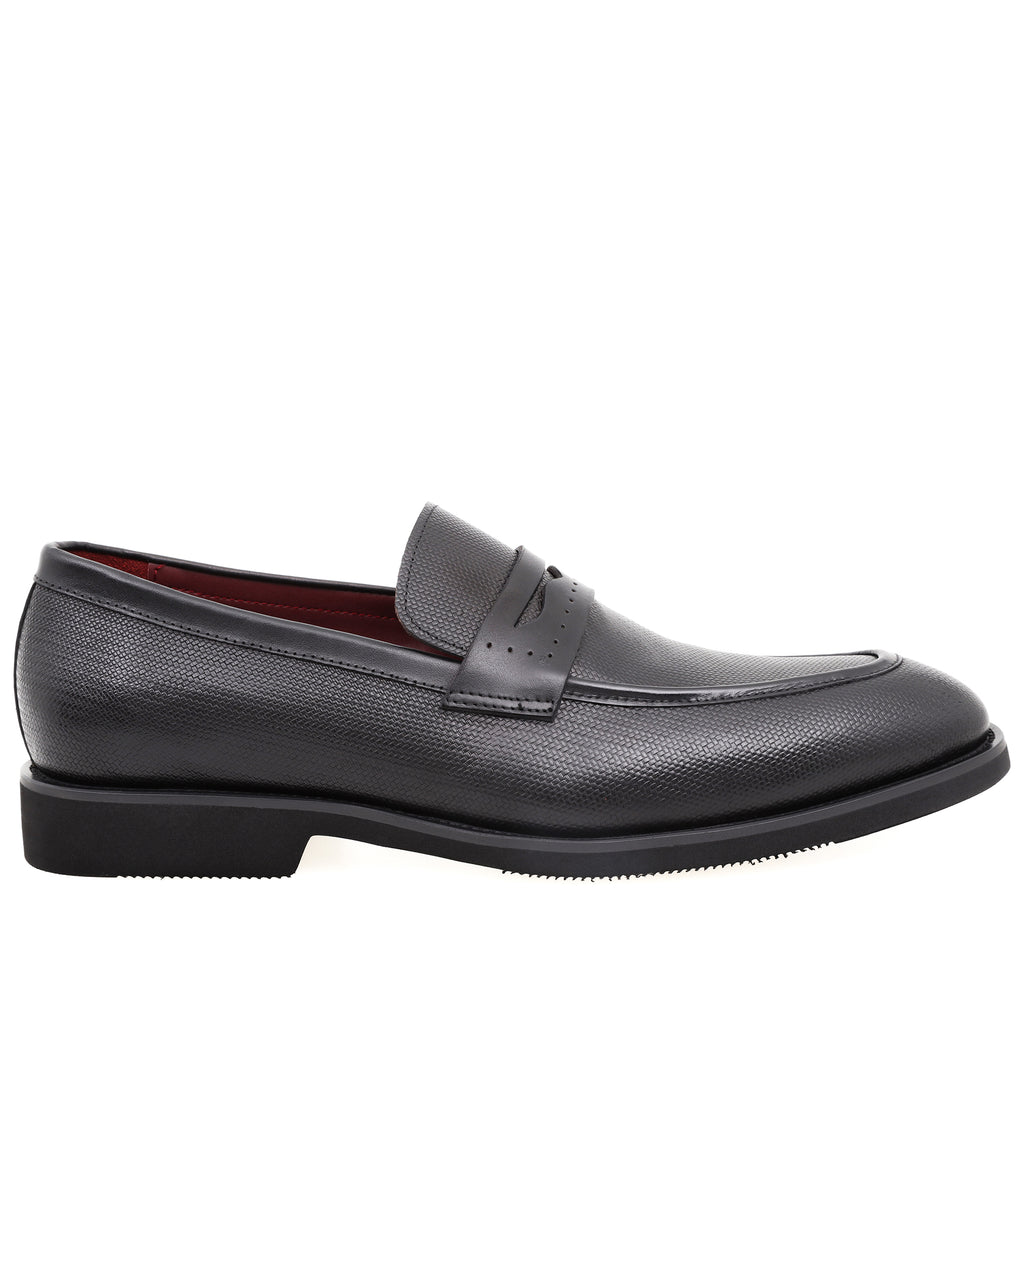 Tomaz HF014 Formal Penny Loafers (Black)